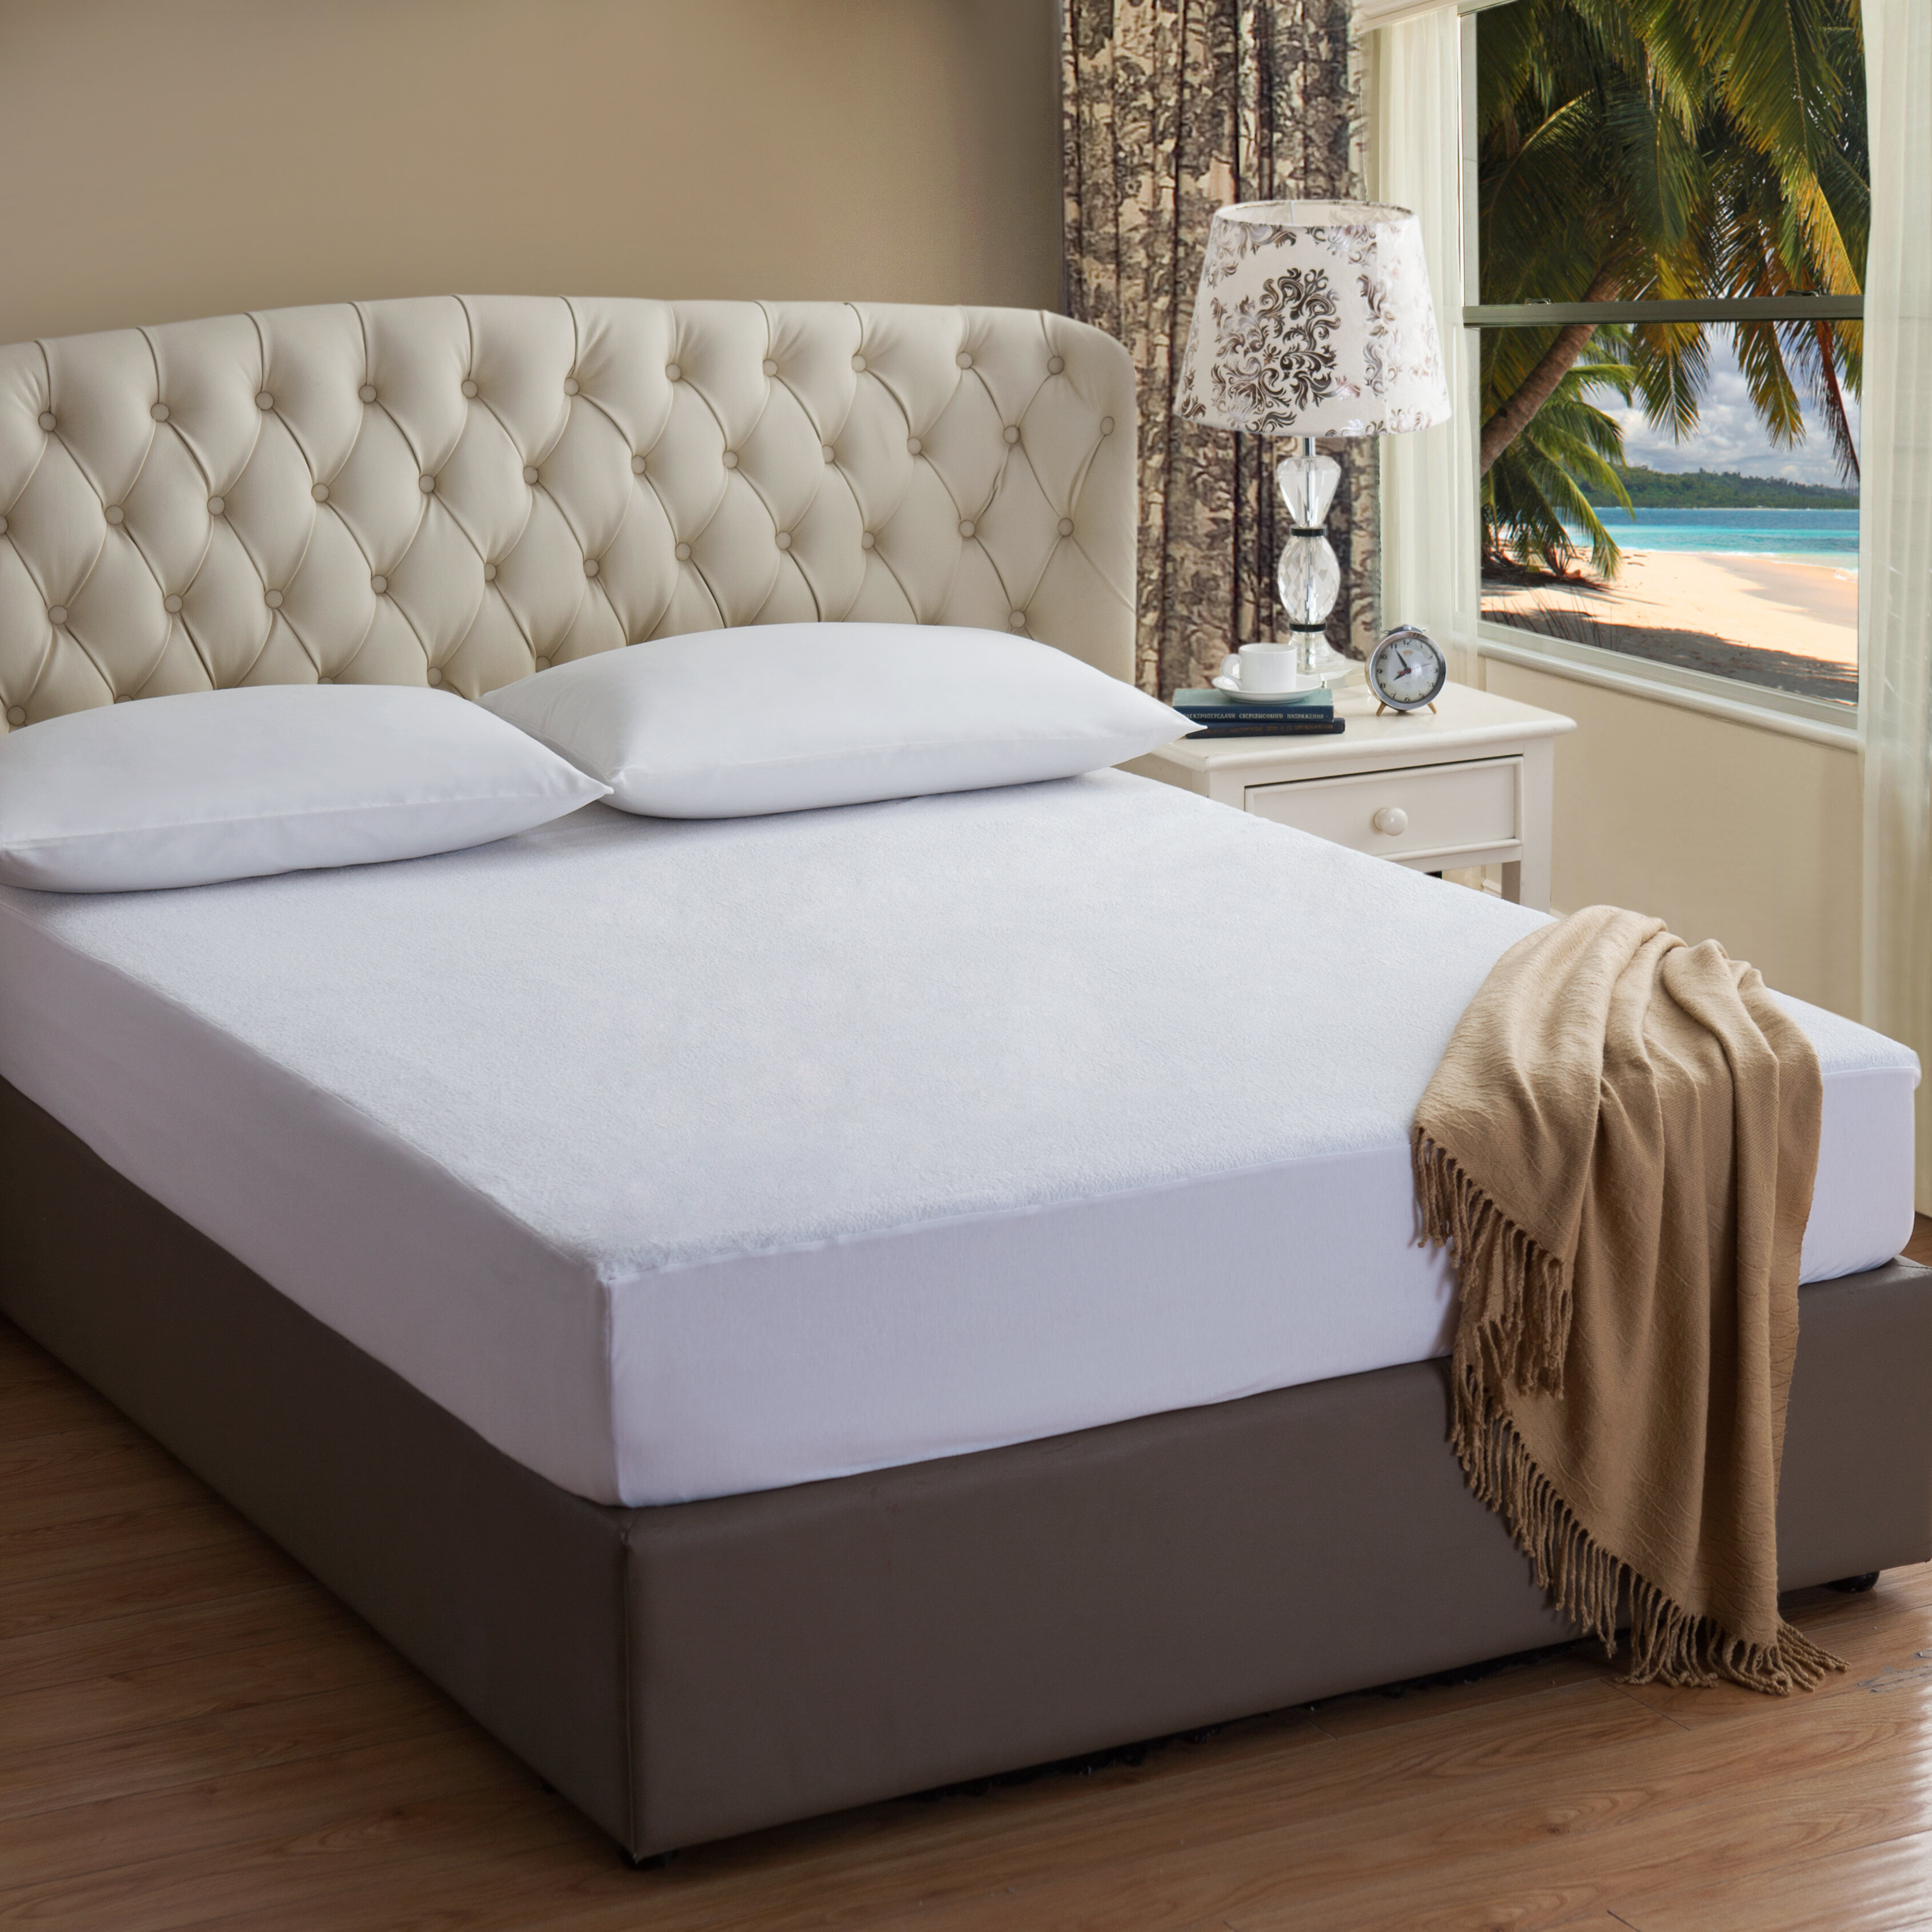 brolly sheets protector best waterproof double quilted protectors product prices cover mattress